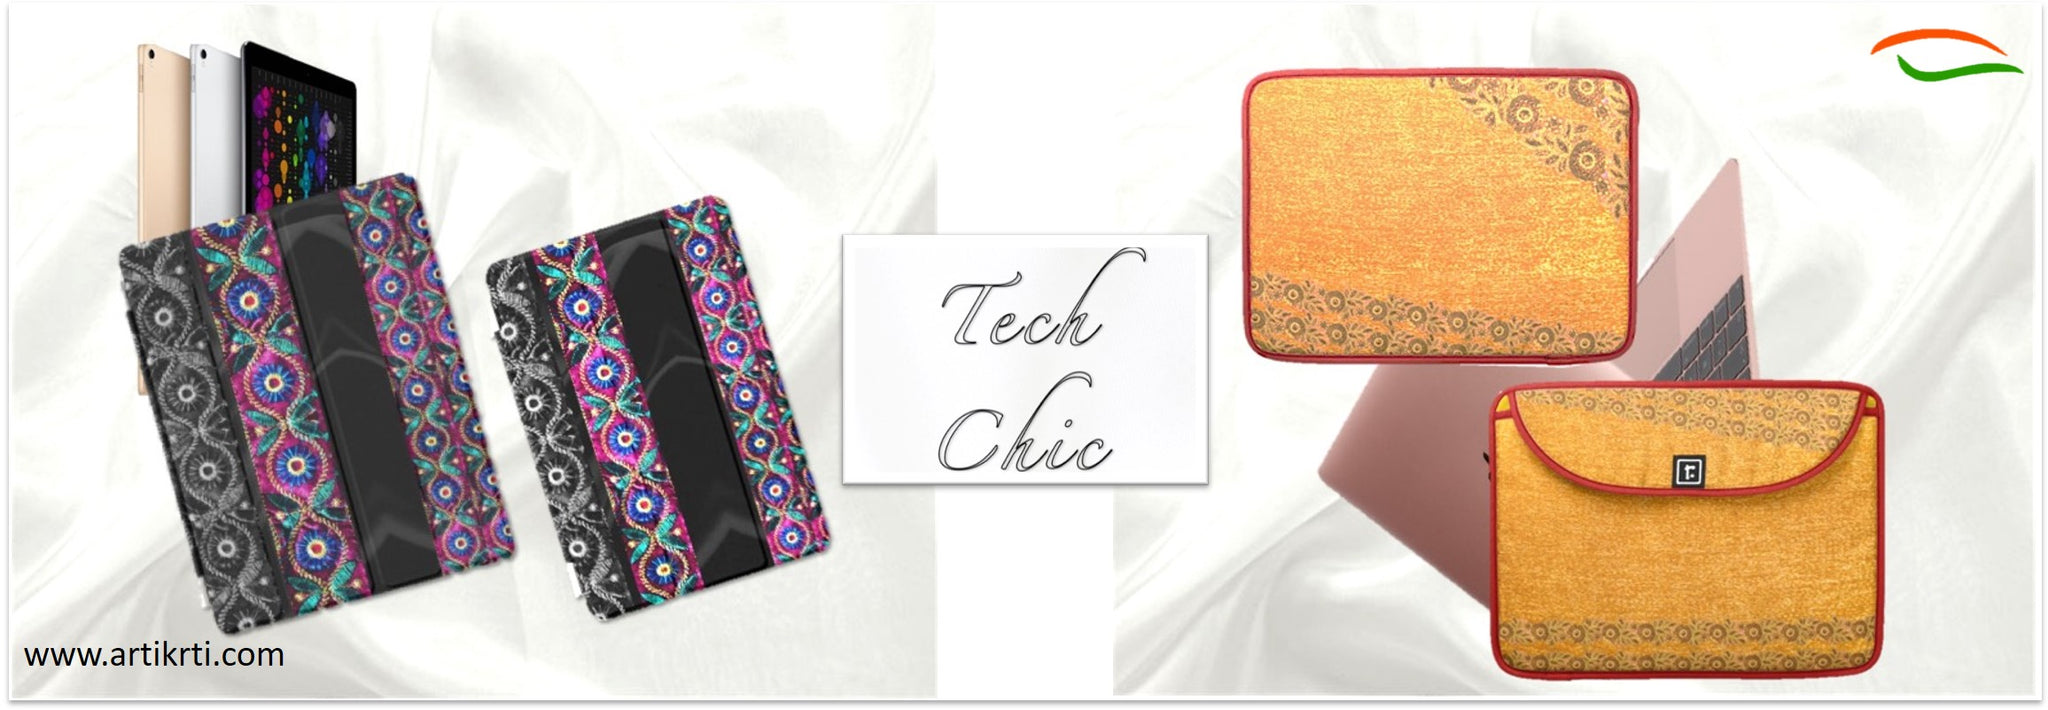 iPad cover-stand-laptop-bag-macbook-case-indian-design-motifs-artikrti